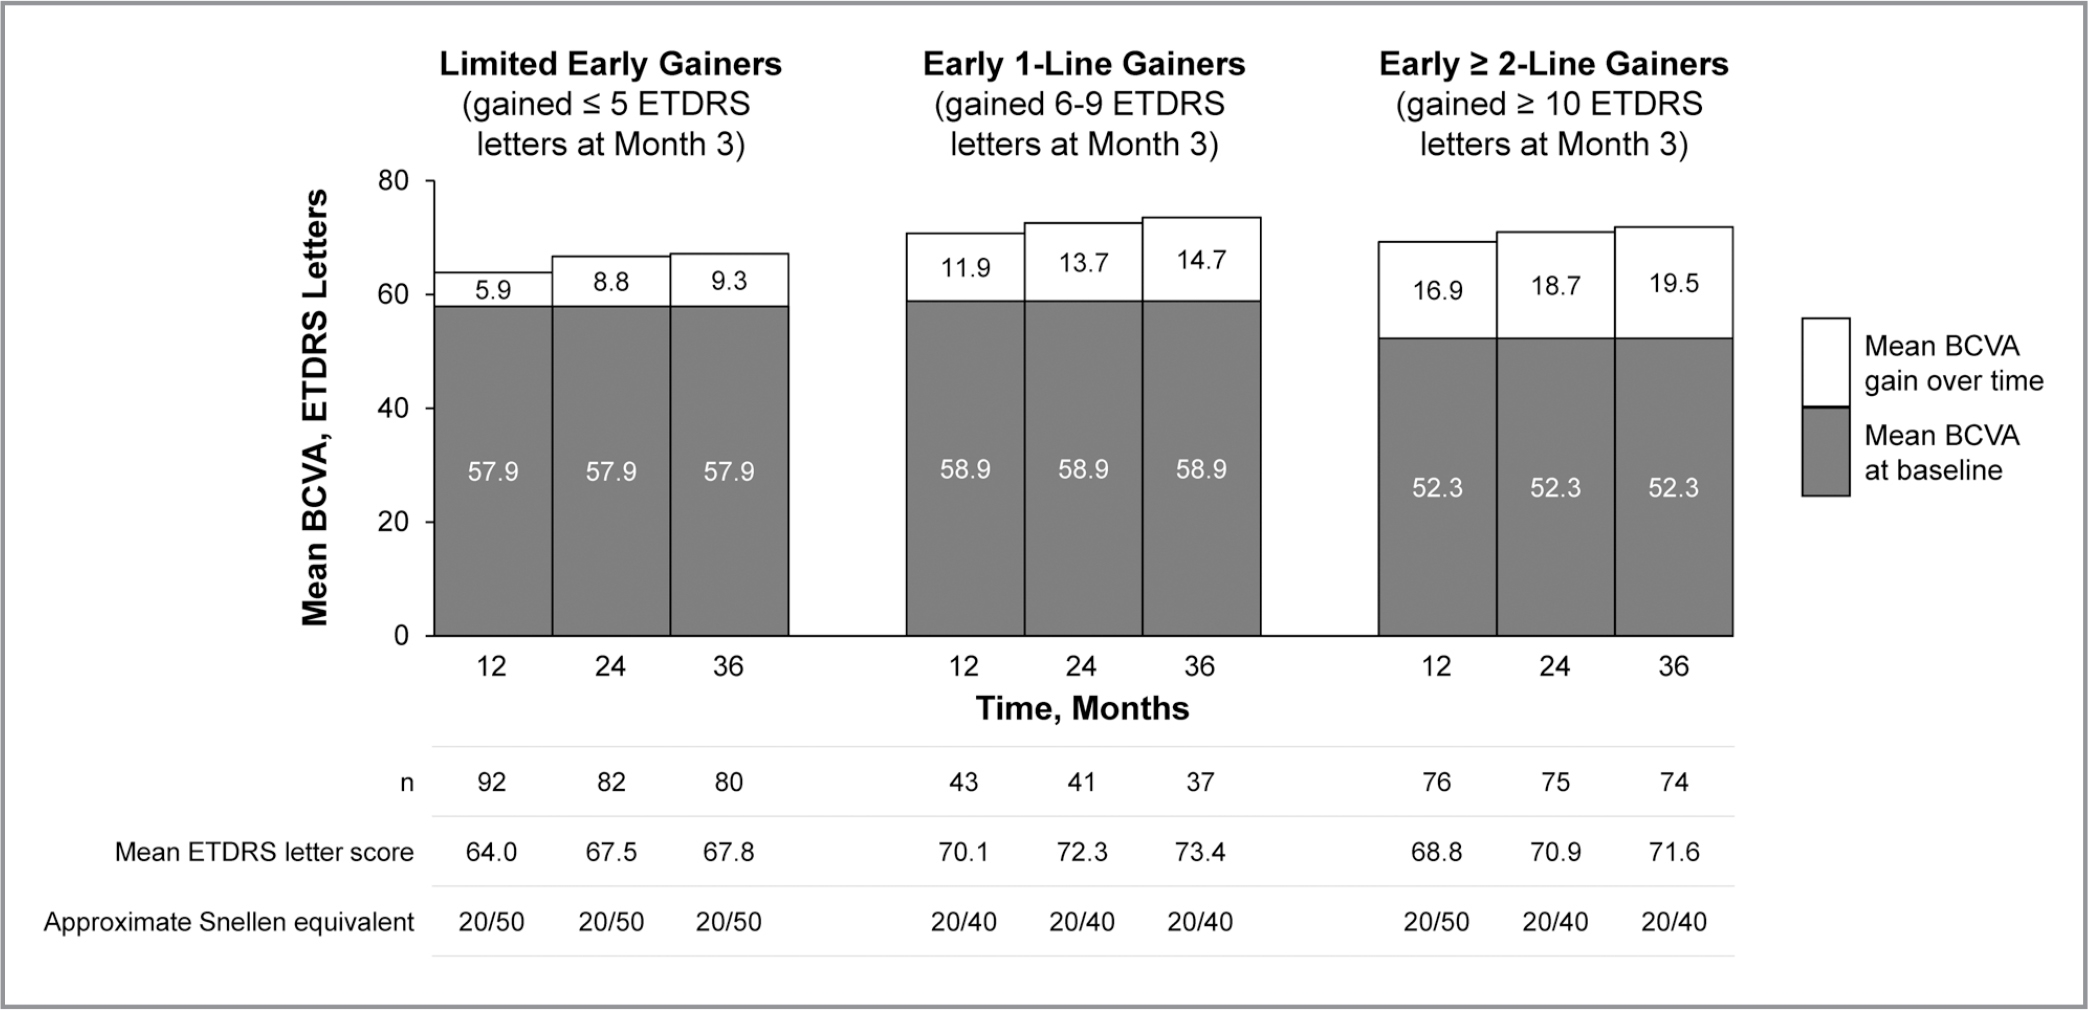 Mean baseline best-corrected visual acuity (BCVA) and mean BCVA gain over 36 months in limited early gainers (left), early 1-line gainers (center), and early ≥ 2-line gainers (right). Mean BCVA at baseline was measured in the overall population for each subgroup; mean BCVA at each time point (Early Treatment Diabetic Retinopathy Study [ETDRS]) letter score and approximate Snellen equivalent) were measured in patients with sufficient follow-up.